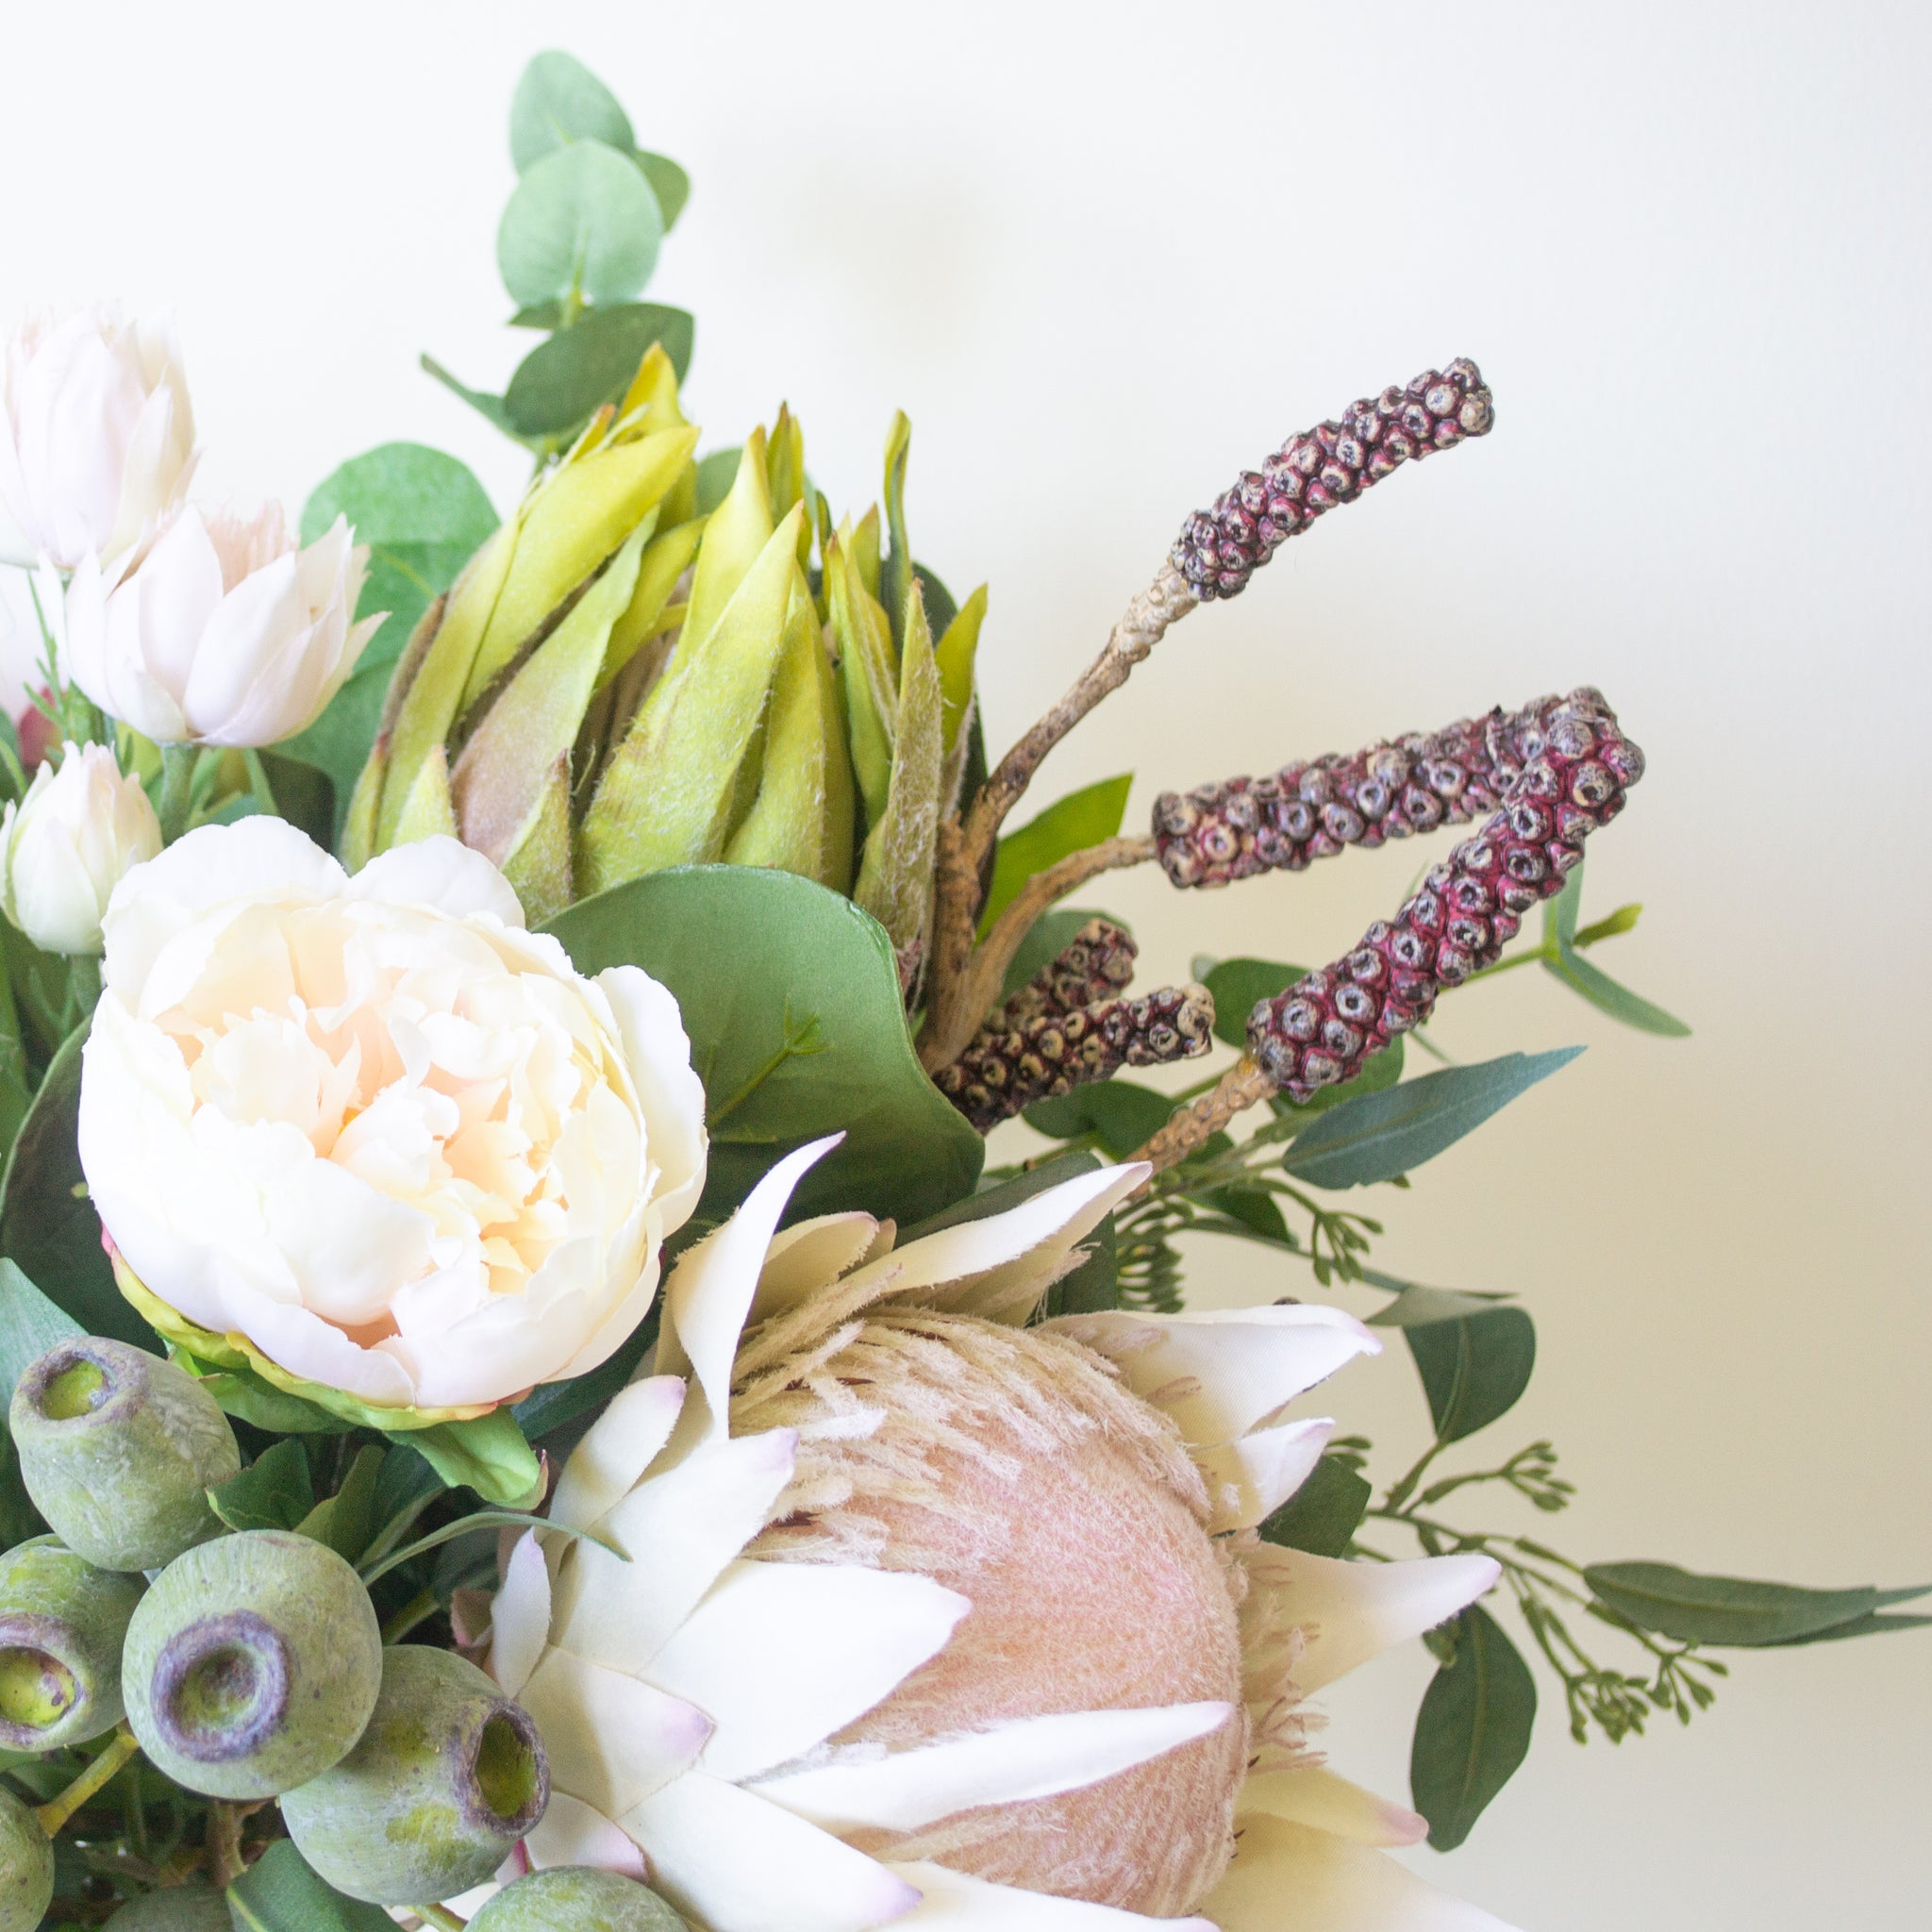 King protea, peony, leucadendron and blushing brides with bottle brush pods